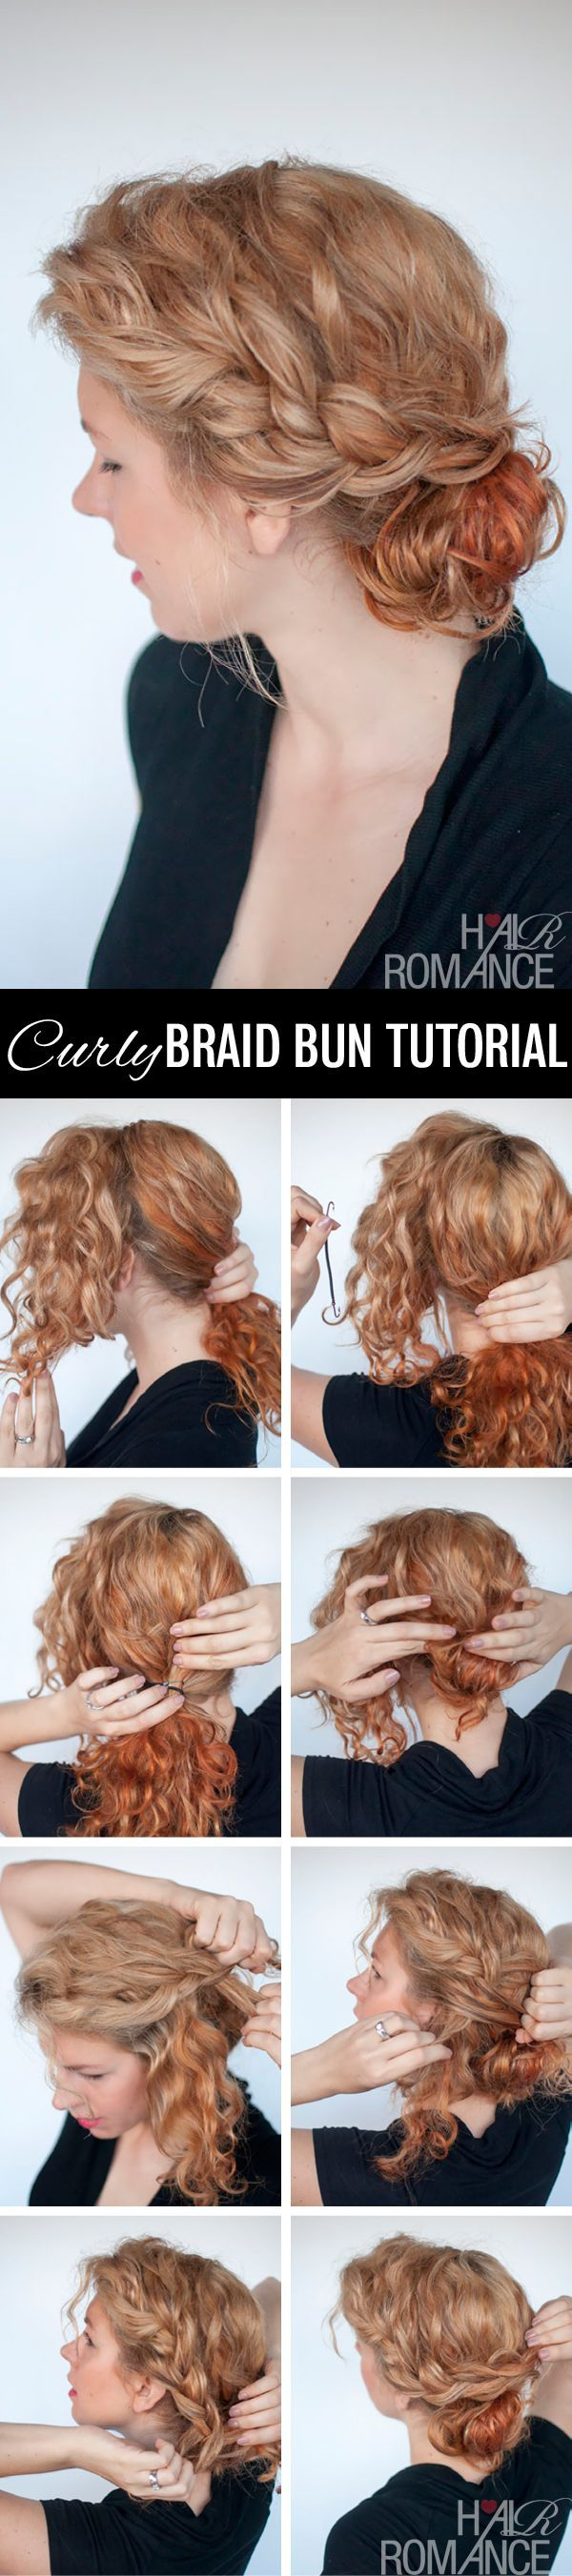 How to Manage Curly Hair. Oh my gosh FINALLY someone who understands curly hair!!!